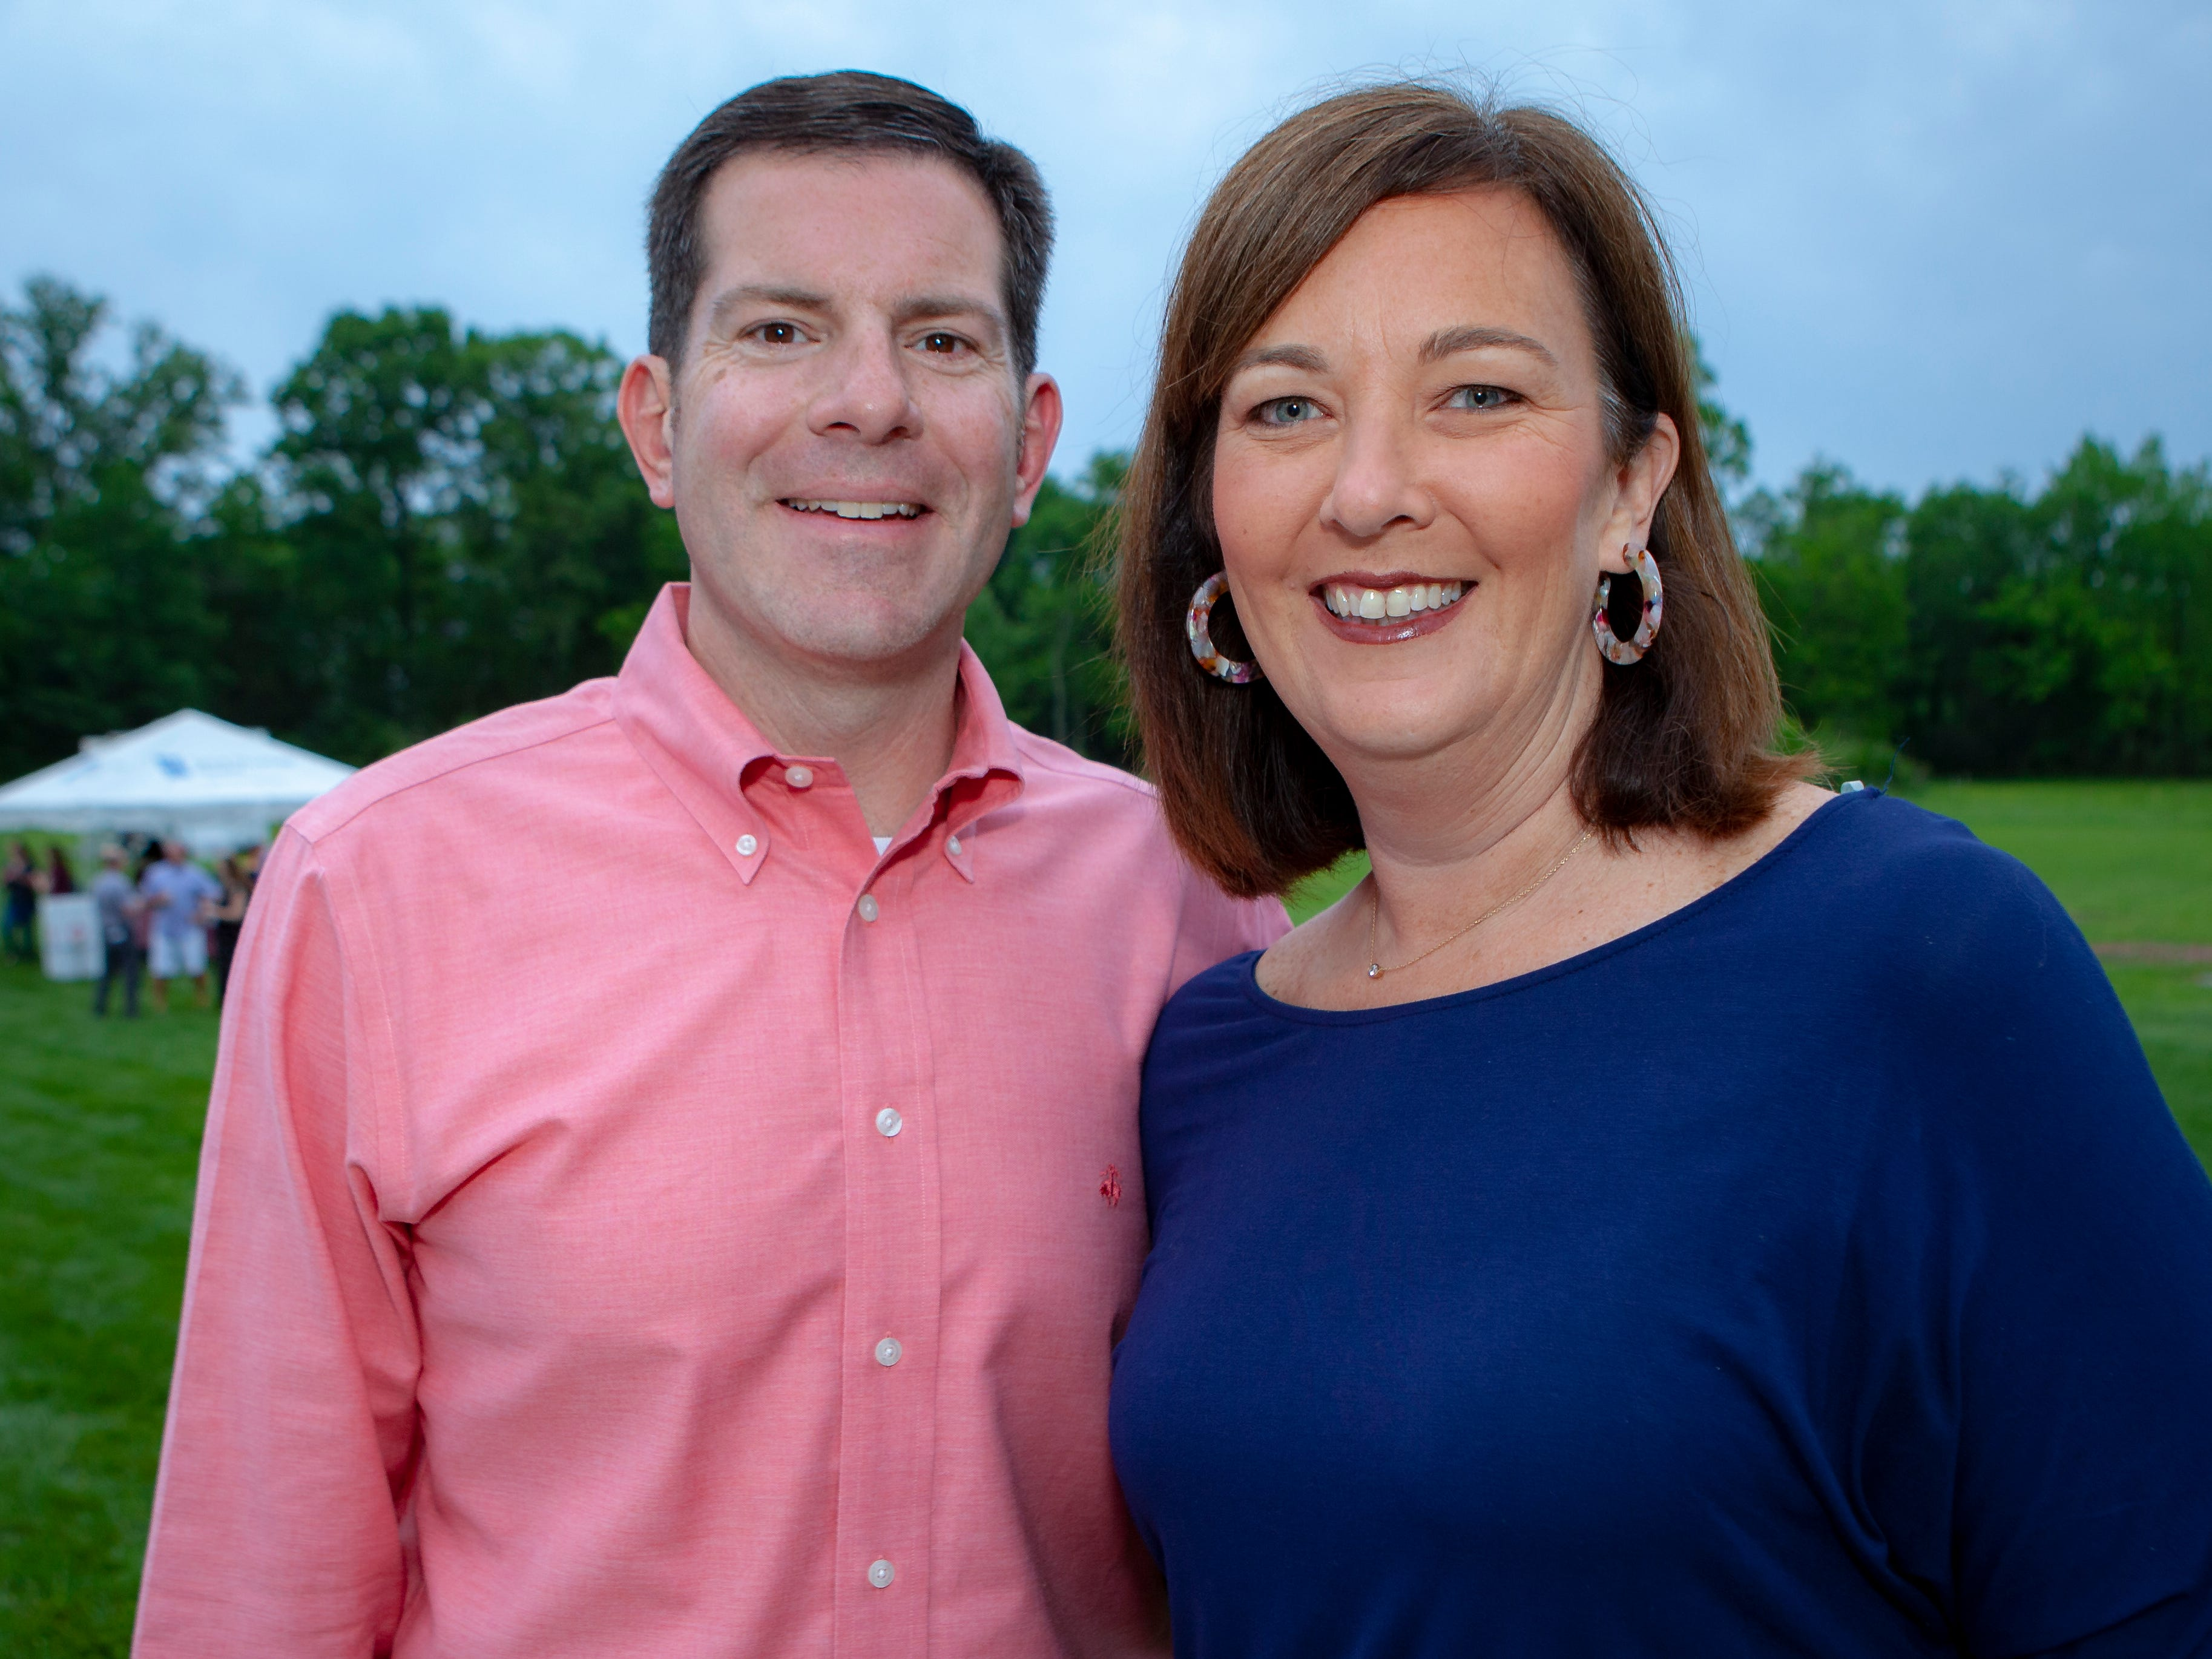 Tom and Stacy Boyle enjoyed a Cajun feast under the stars at United Way's Red, White and Bayou, held Friday, May 10, 2019 at the home of Jimmy & Nikkole Aho.